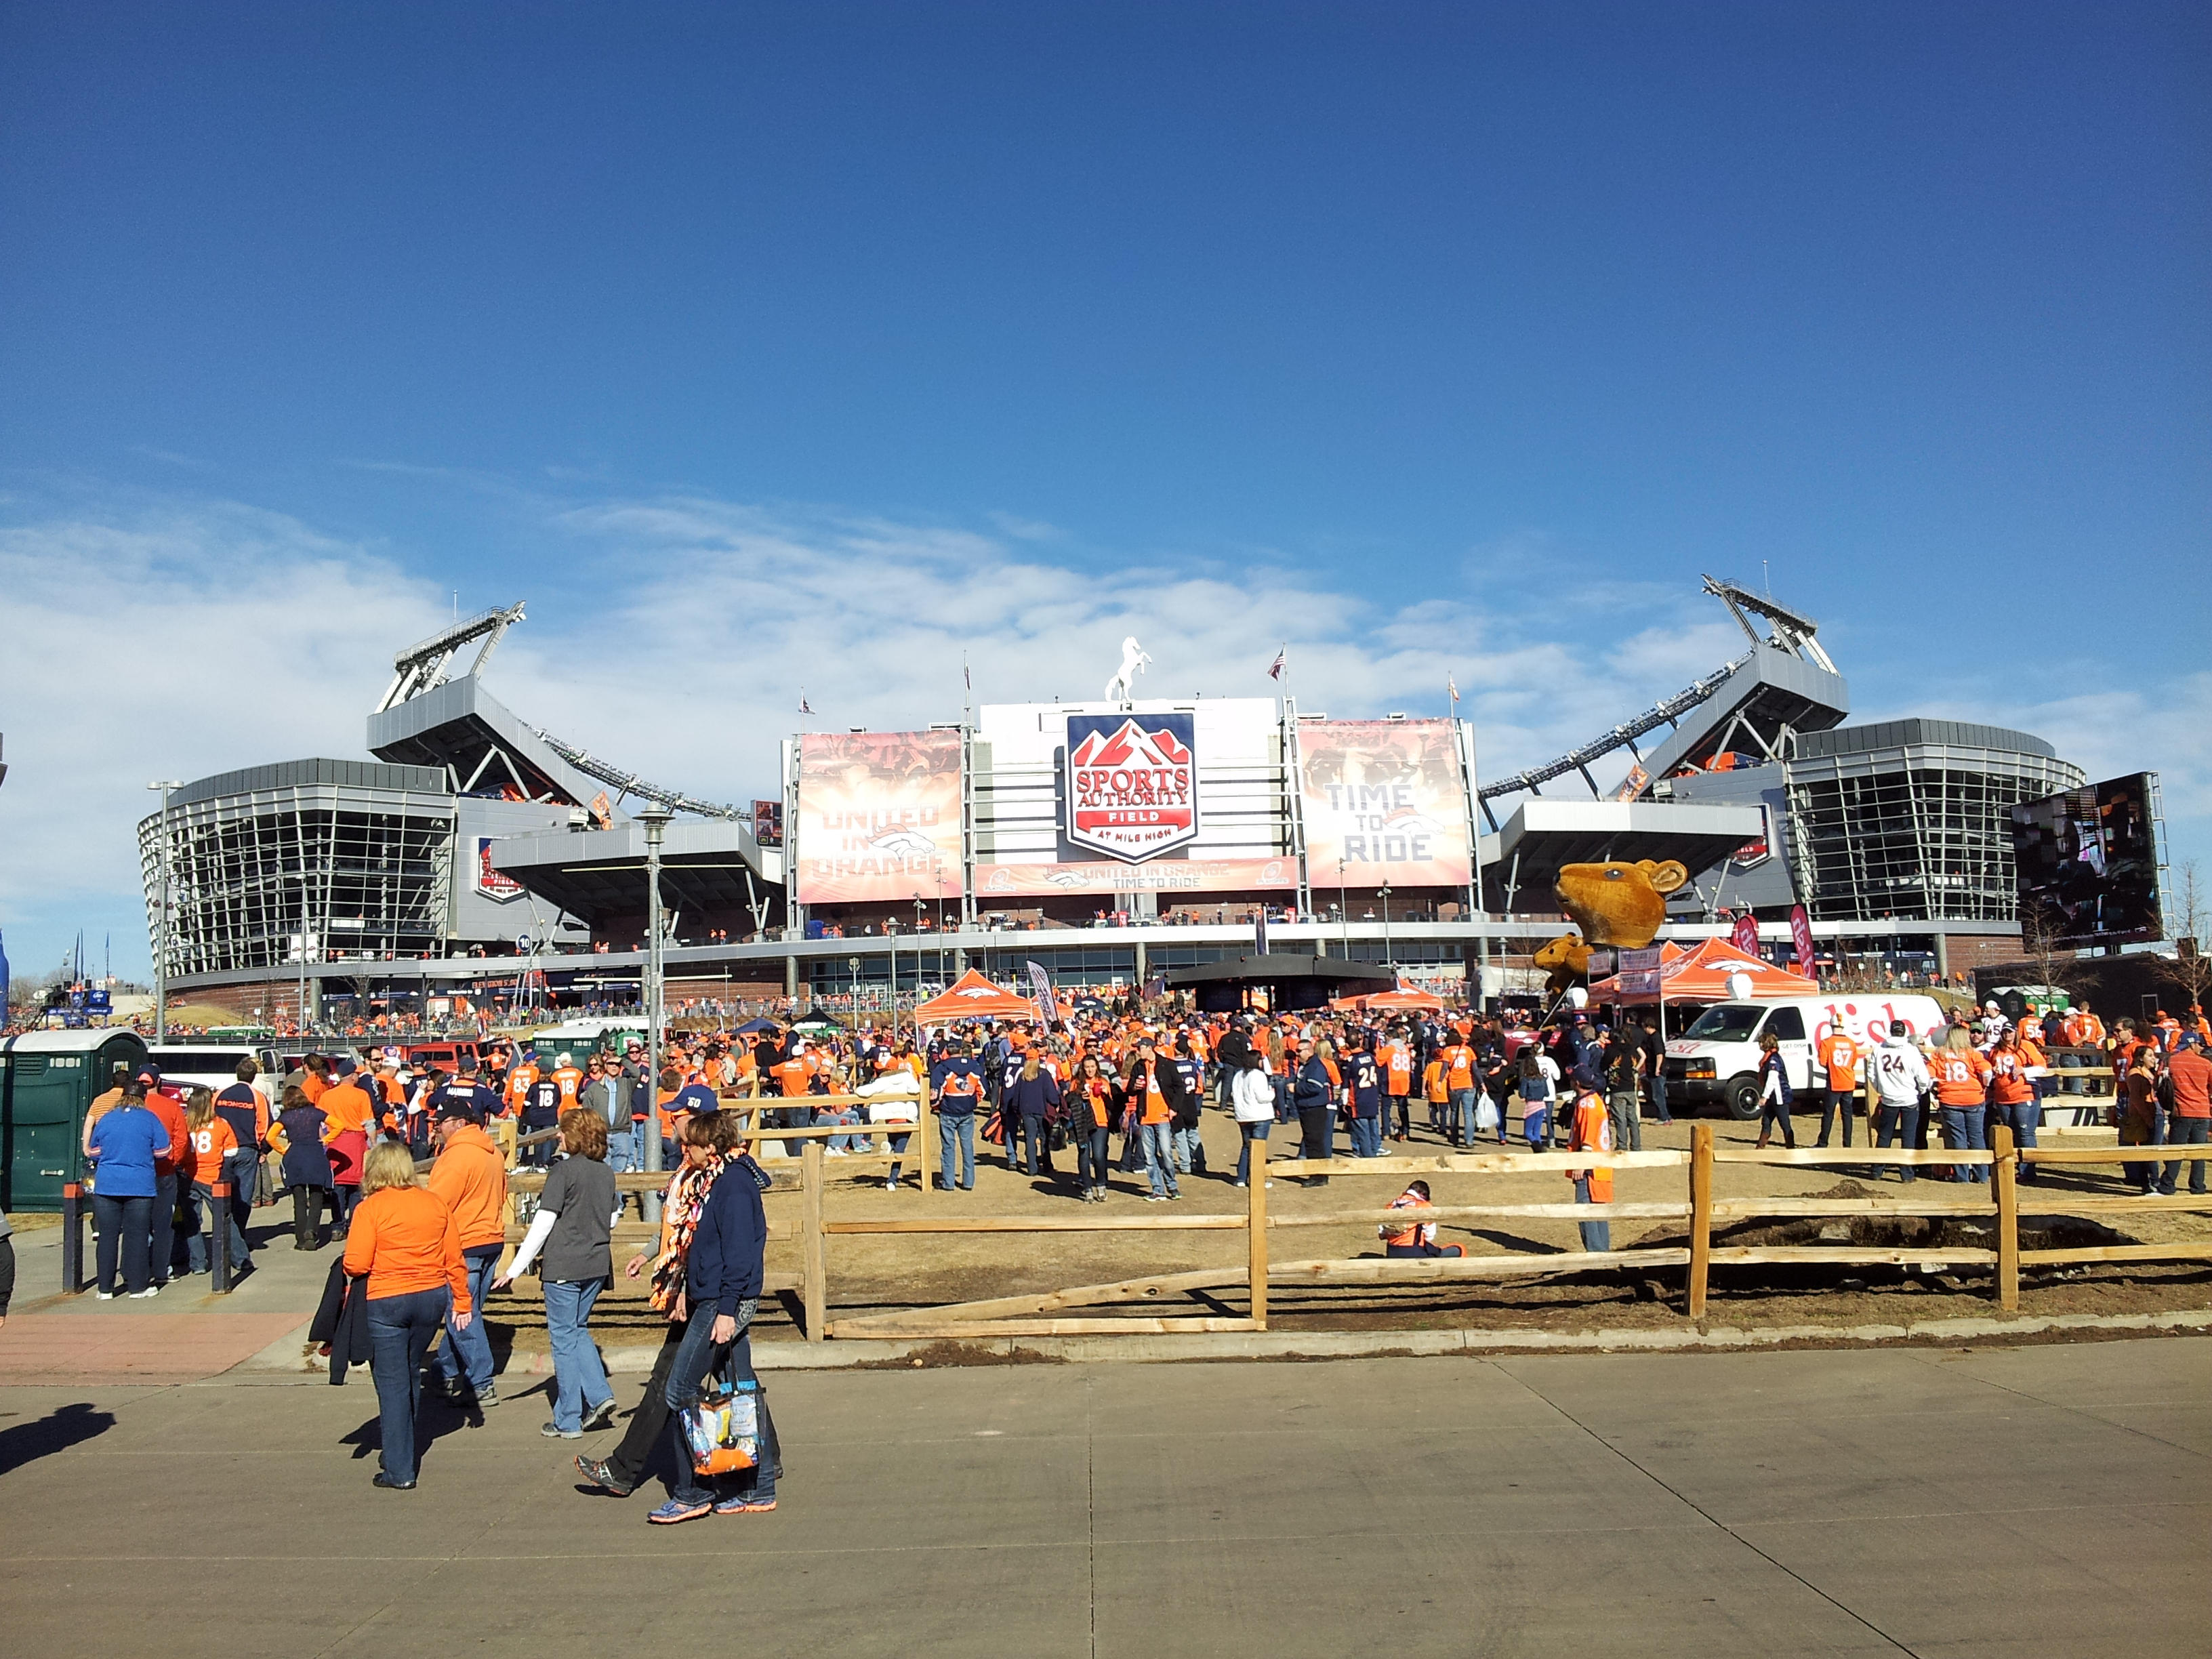 Sports_Authority_Field_at_Mile_High_AFC_Championship_game.jpg